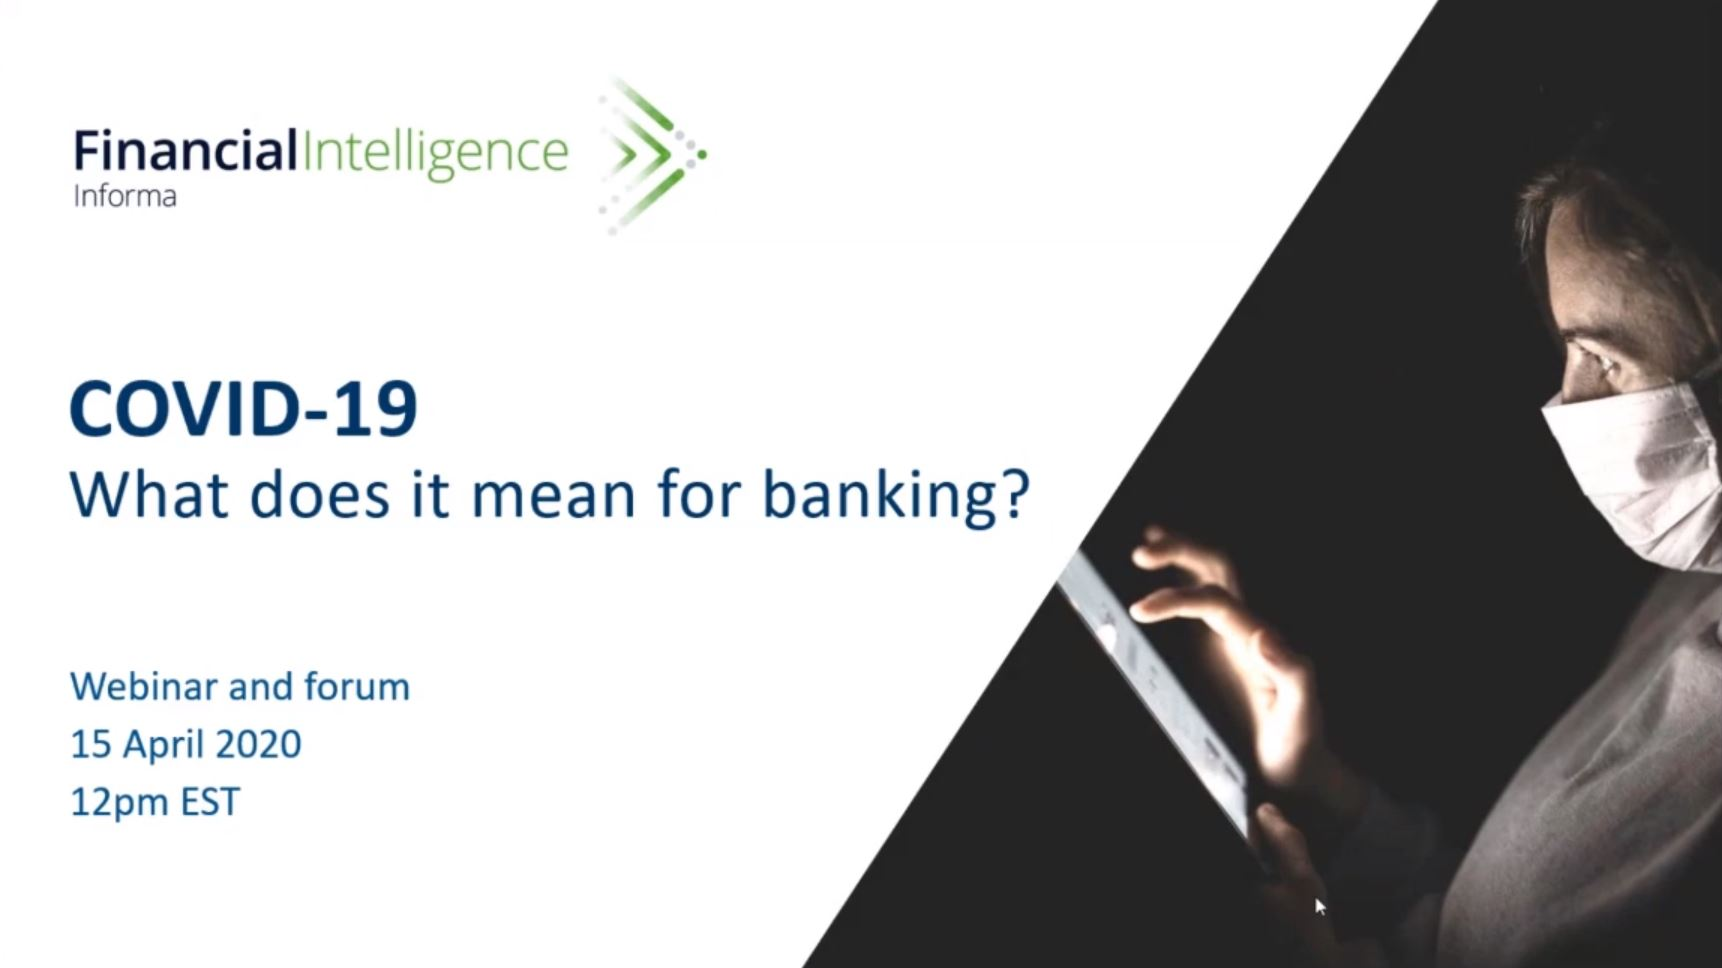 COVID-19 What does it mean for banking